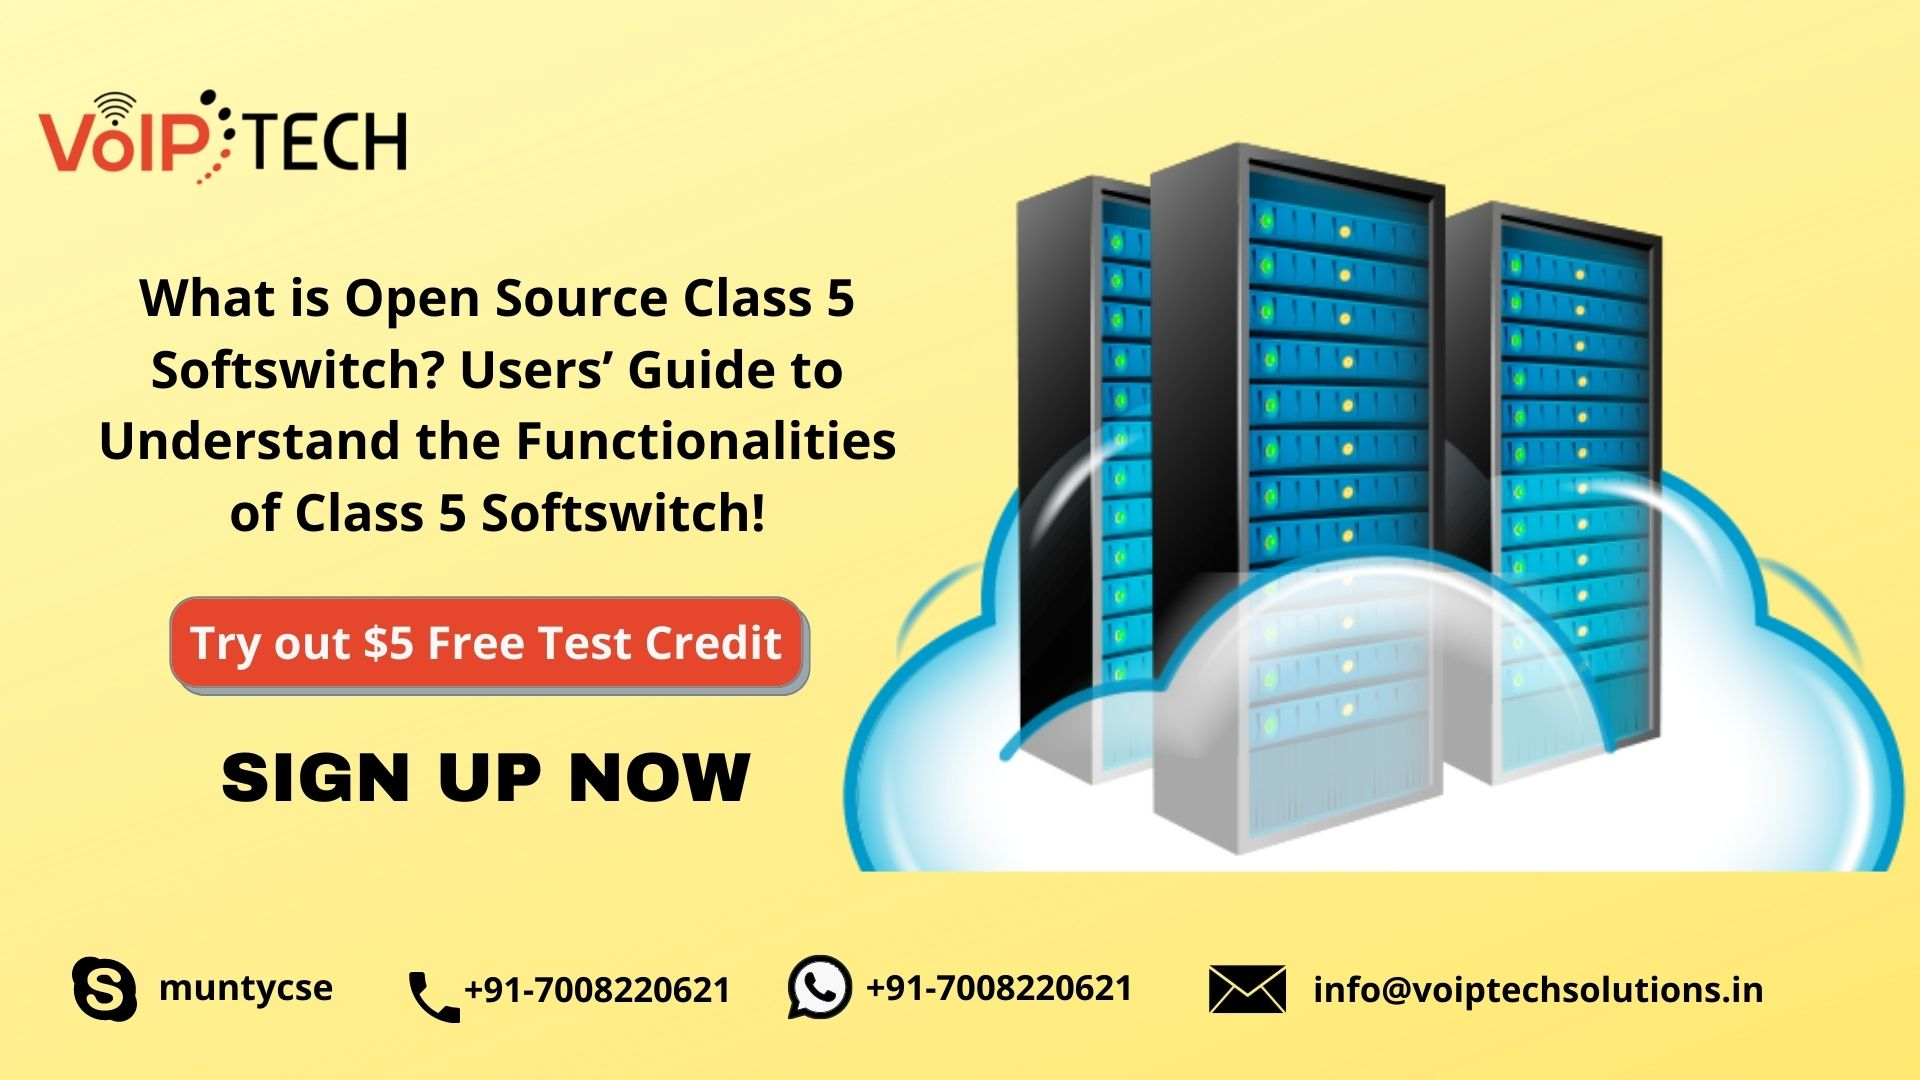 What is Open Source Class 5 Softswitch? Users' Guide to Understand the Functionalities of Class 5 Softswitch!, Temporary Mobile Numbers, Open Source Class 5 Softswitch,Exploring The VoIP Technology from Business Point of view. Pros & Cons! ,VoIP Business, VoIP tech solutions, vici dialer, virtual number, Voip Providers, voip services in india, best sip provider, business voip providers, VoIP Phone Numbers, voip minutes provider, top voip providers, voip minutes, International VoIP Provider